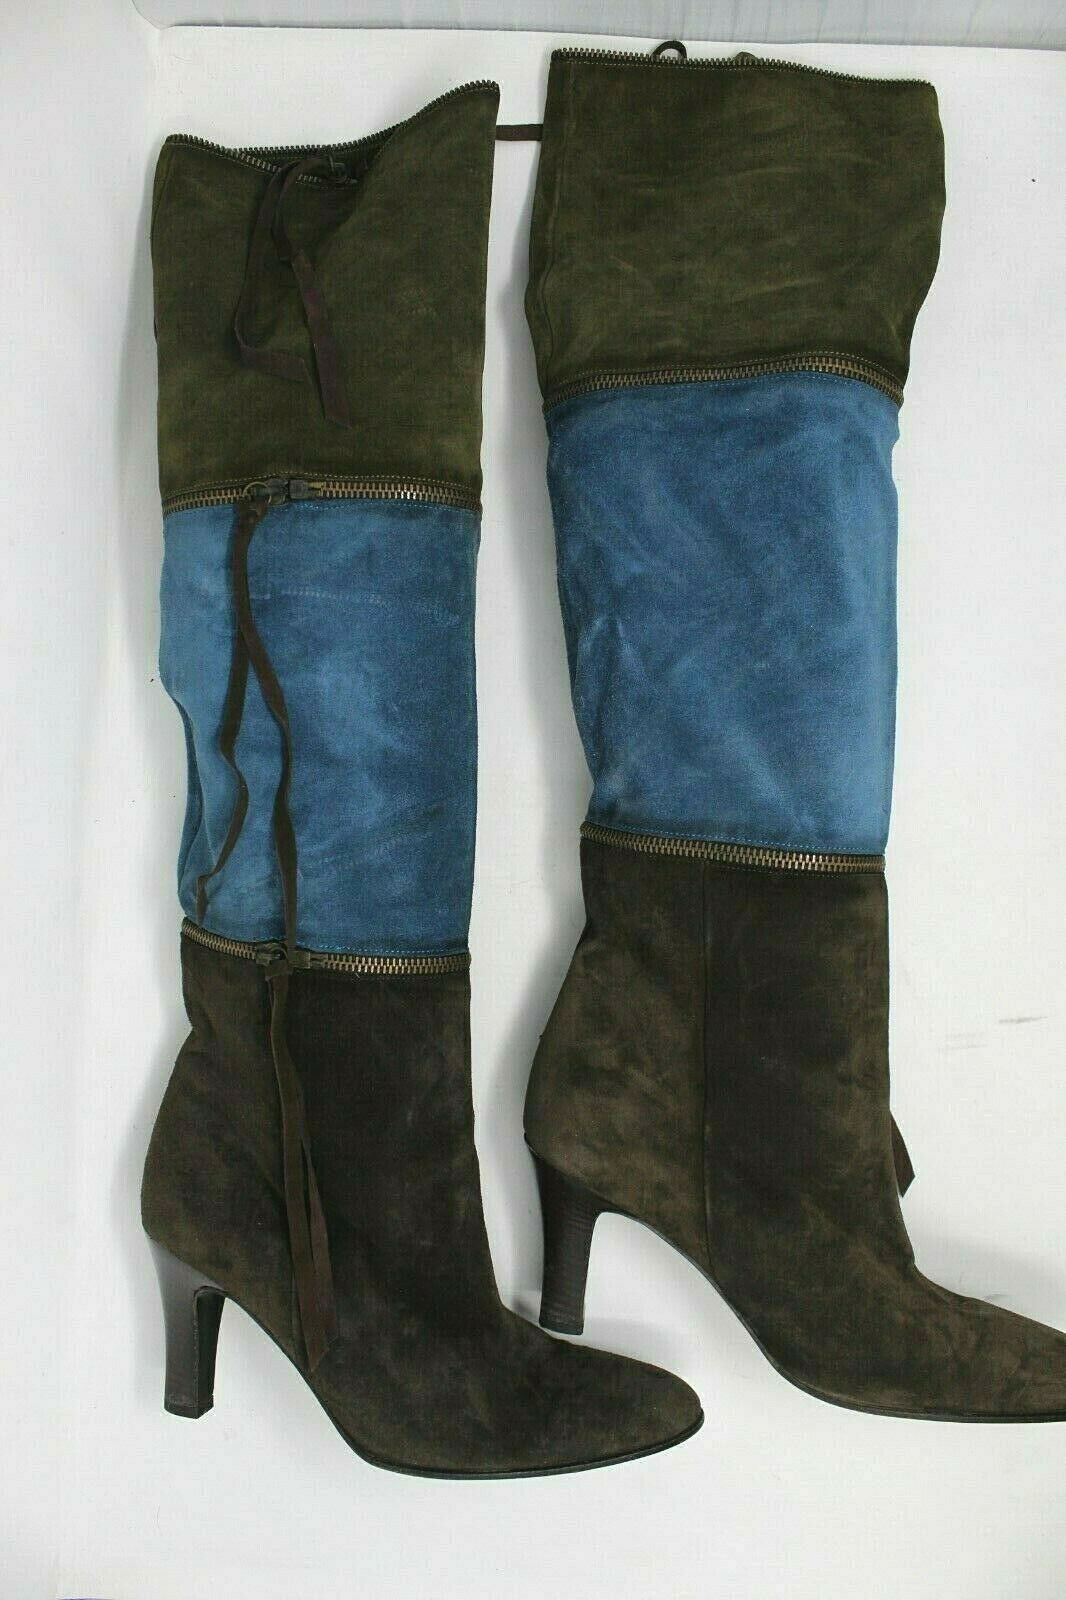 BCBGMAXAZRIA Knee High Leather 3 in 1 Multi color Boots Women's Size  9  2